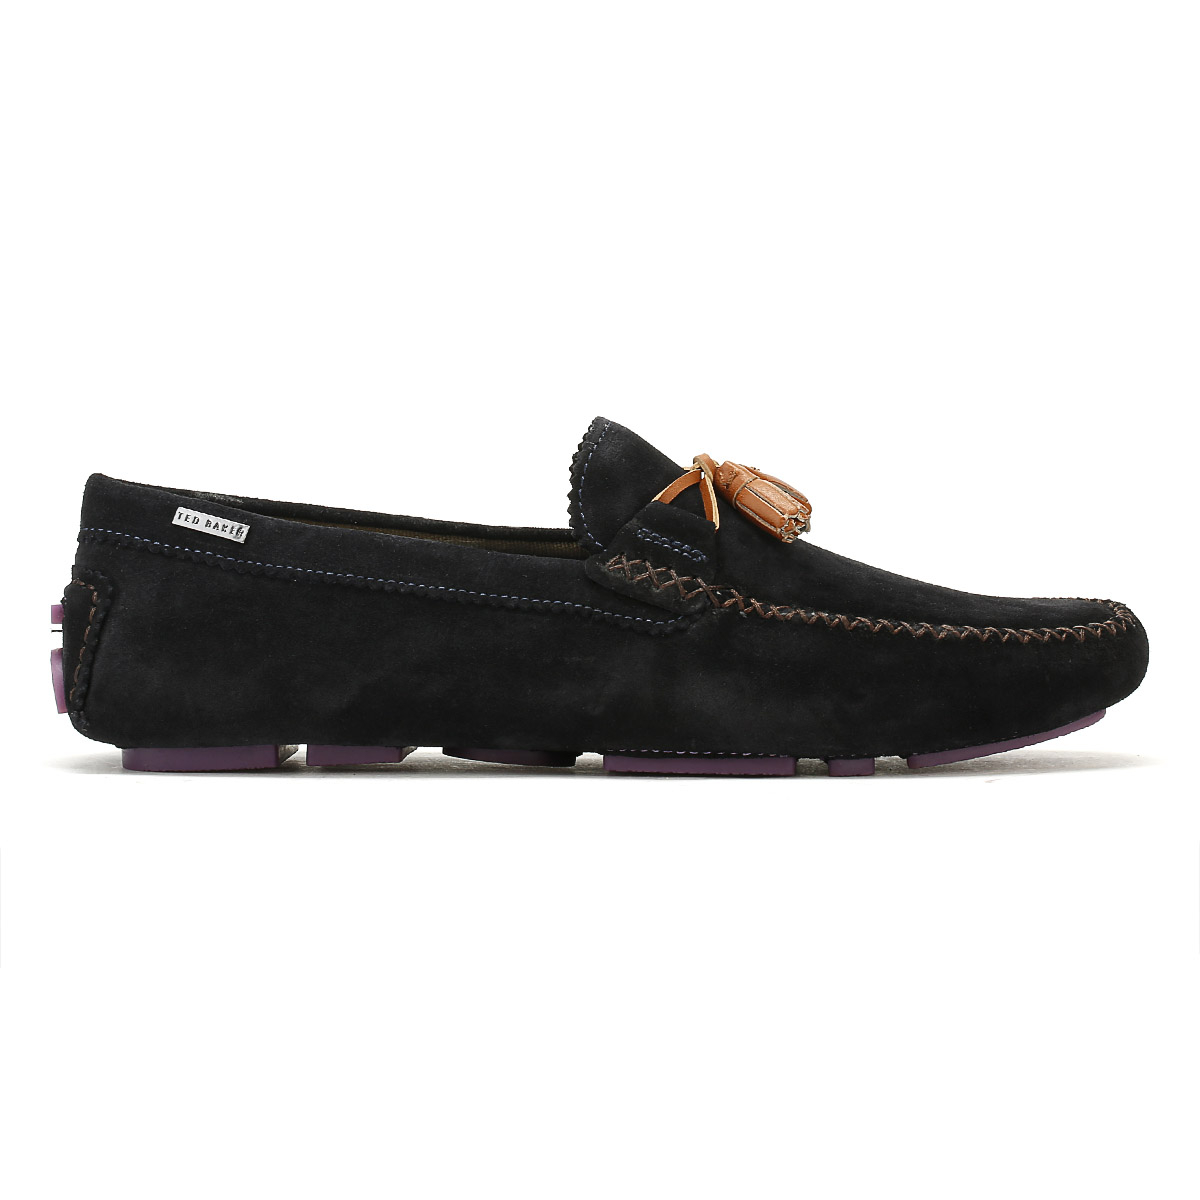 3ce4ff91c74 Ted Baker Mens Dark Blue Urbonn Suede Shoes Casual Moccasins Loafers ...